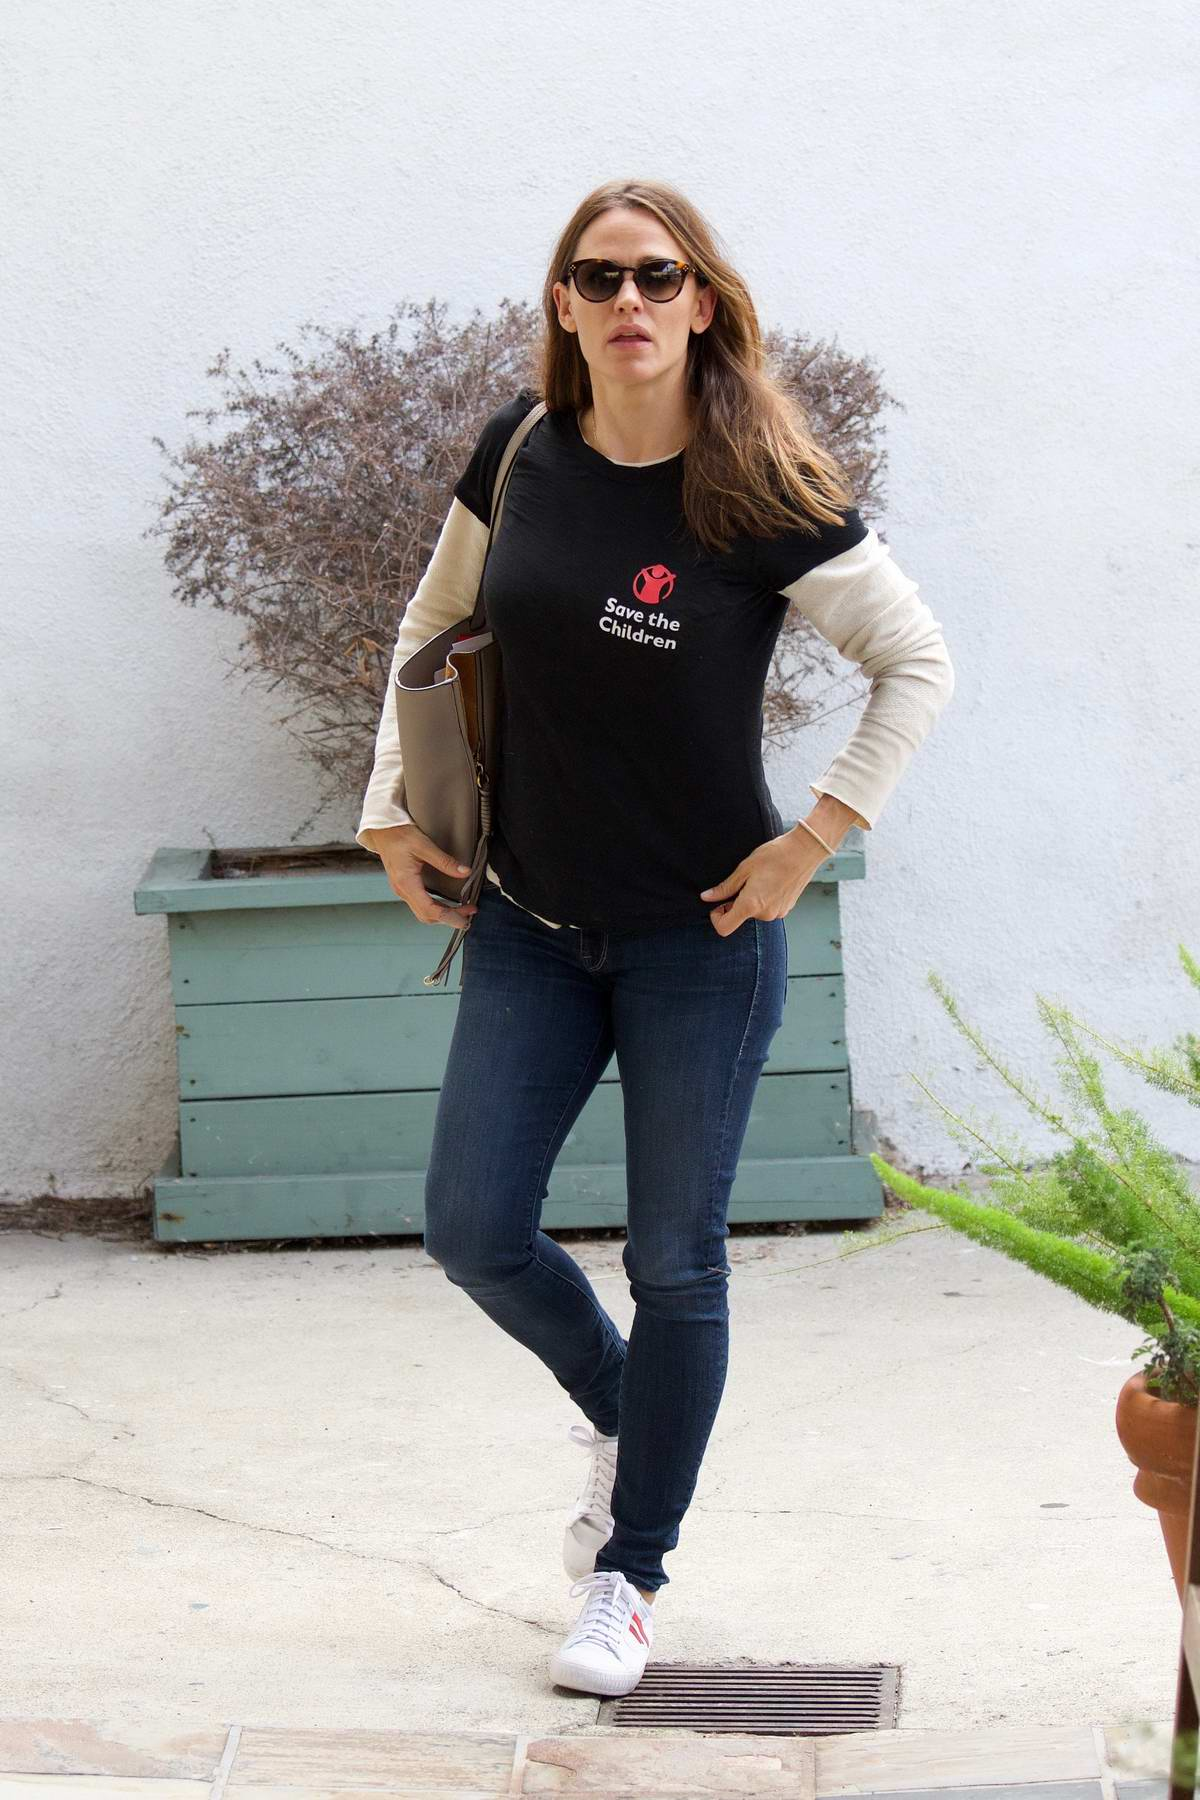 Jennifer Garner wears an 'Save The Children' t-shirt while taking her son to his martial art class in Brentwood, Los Angeles